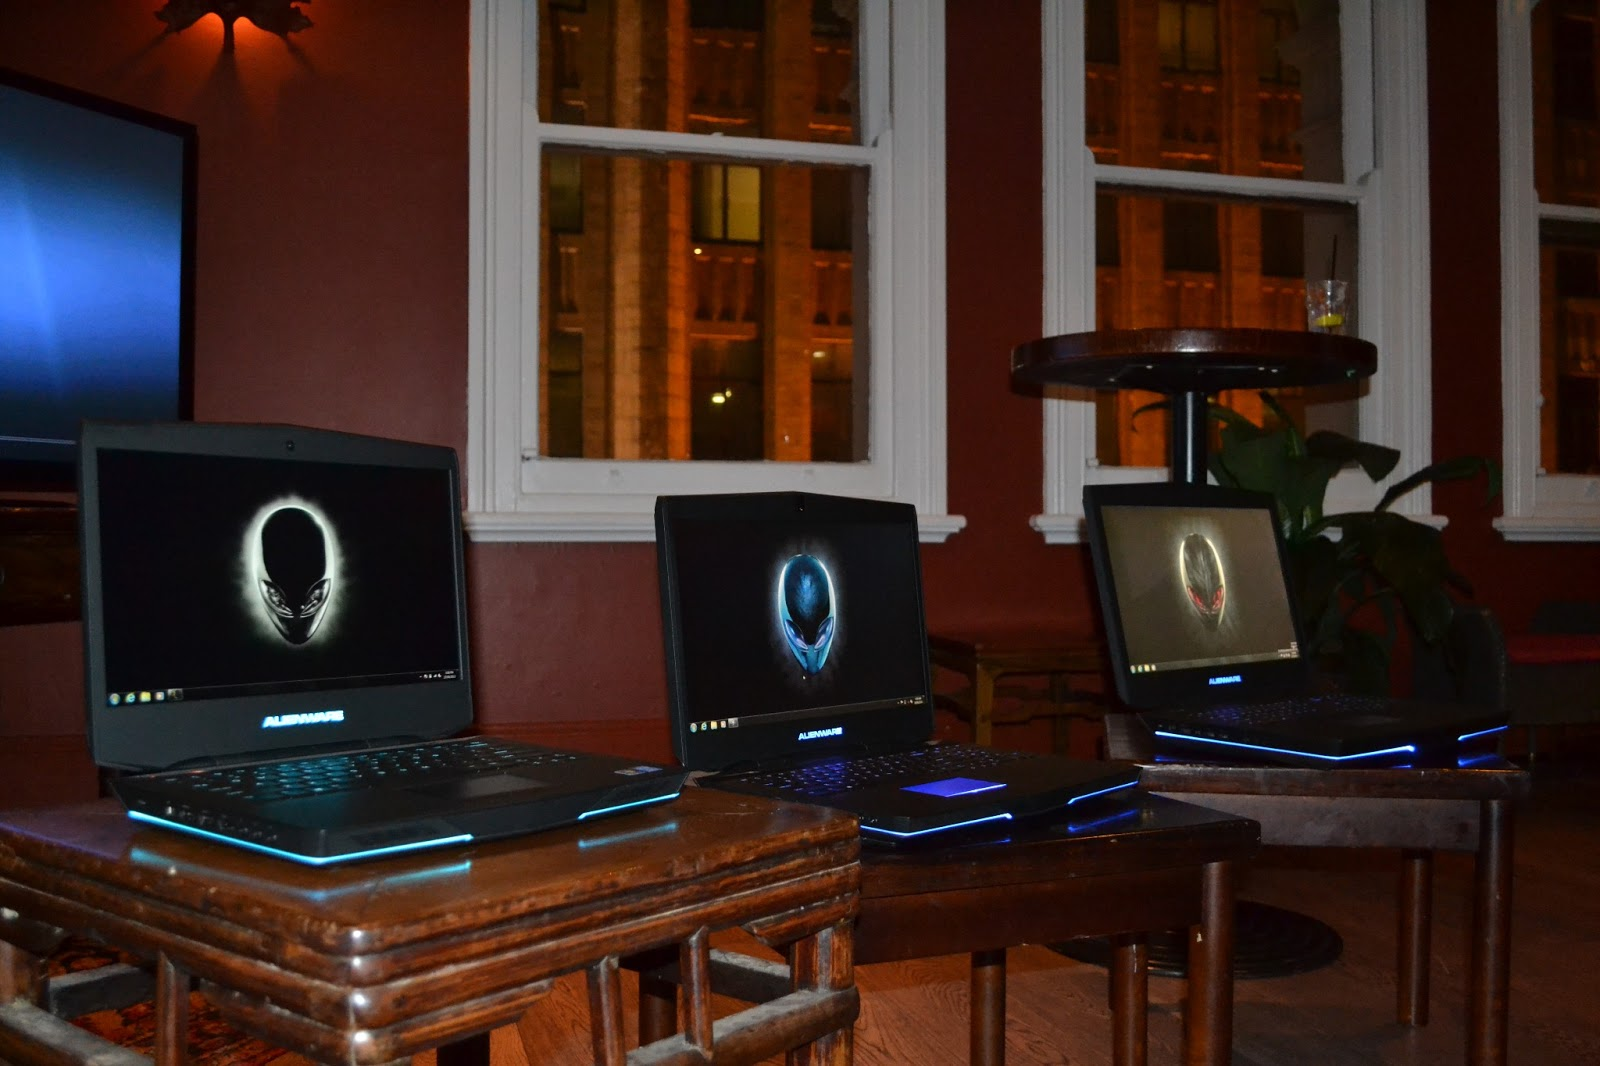 Gaming Laptop Sydney Alienware Bring 3 New Laptops To Market Maxi Geek